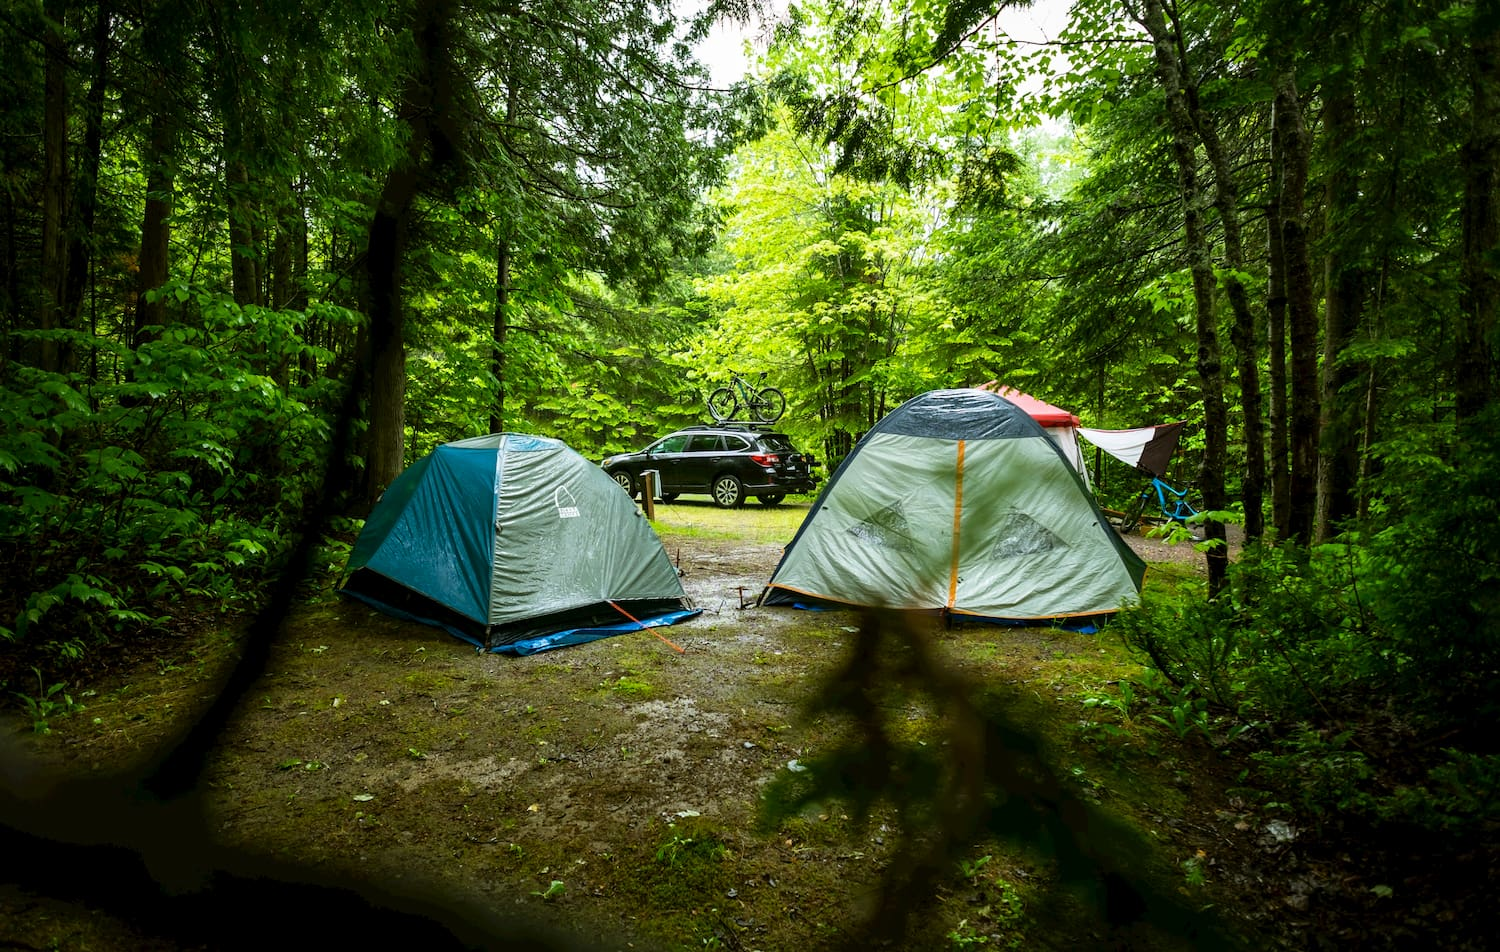 Car parked in the forest beside two tents.